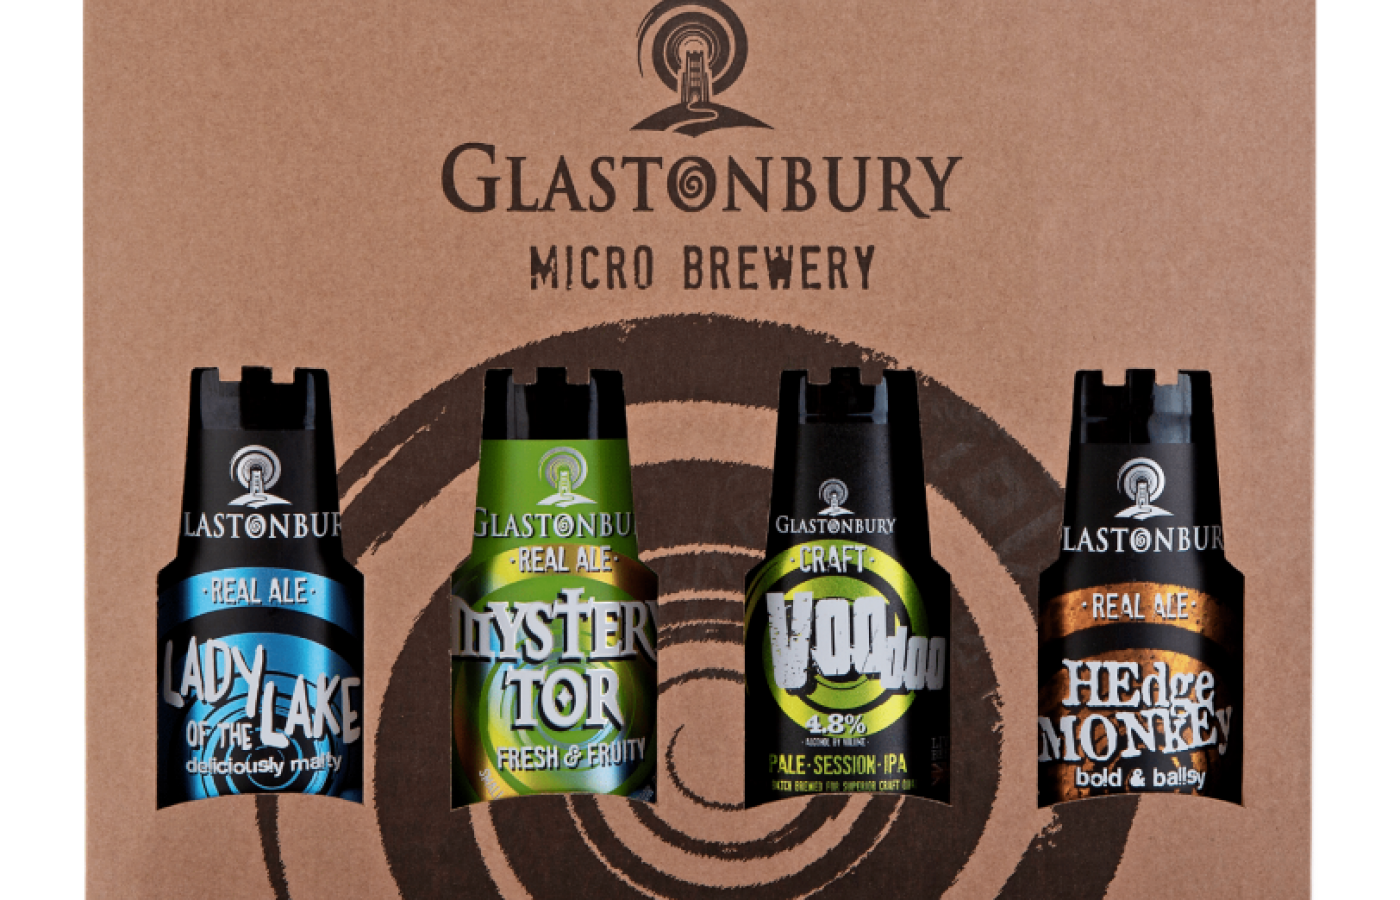 https://www.glastonburyales.com/wp-content/uploads/2019/11/GA-Gift-Pack-01-1400x900.png